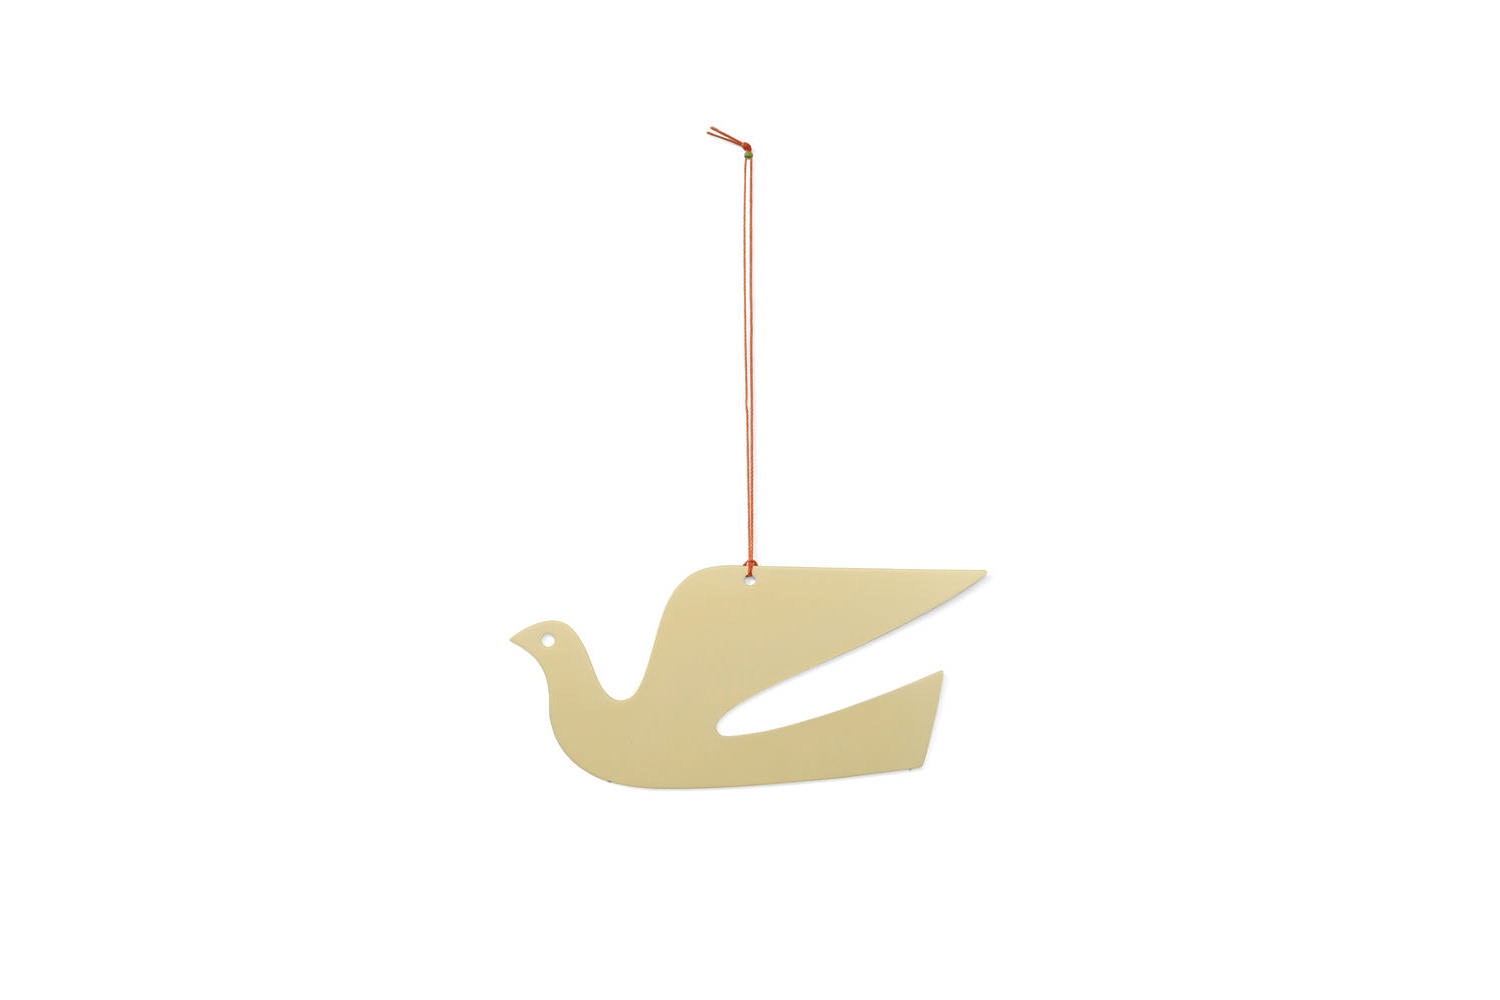 Girard Ornaments by Alexander Girard for Vitra